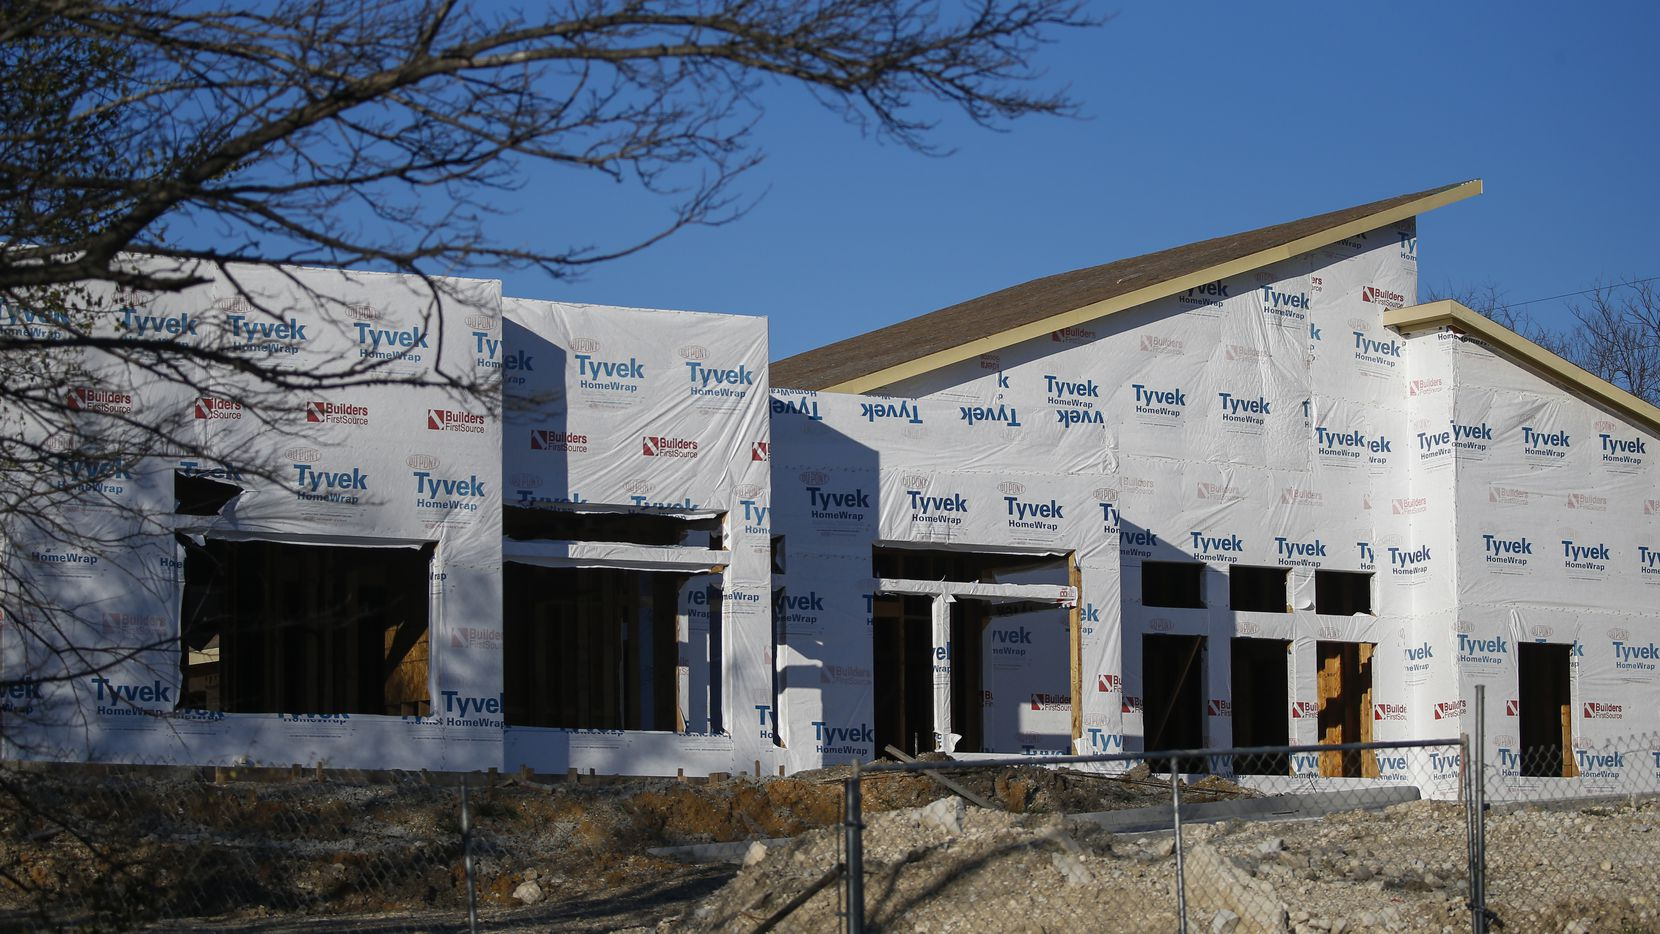 AT LAST! boarding school is seen under construction Wednesday, Feb. 26, 2020 in Dallas.